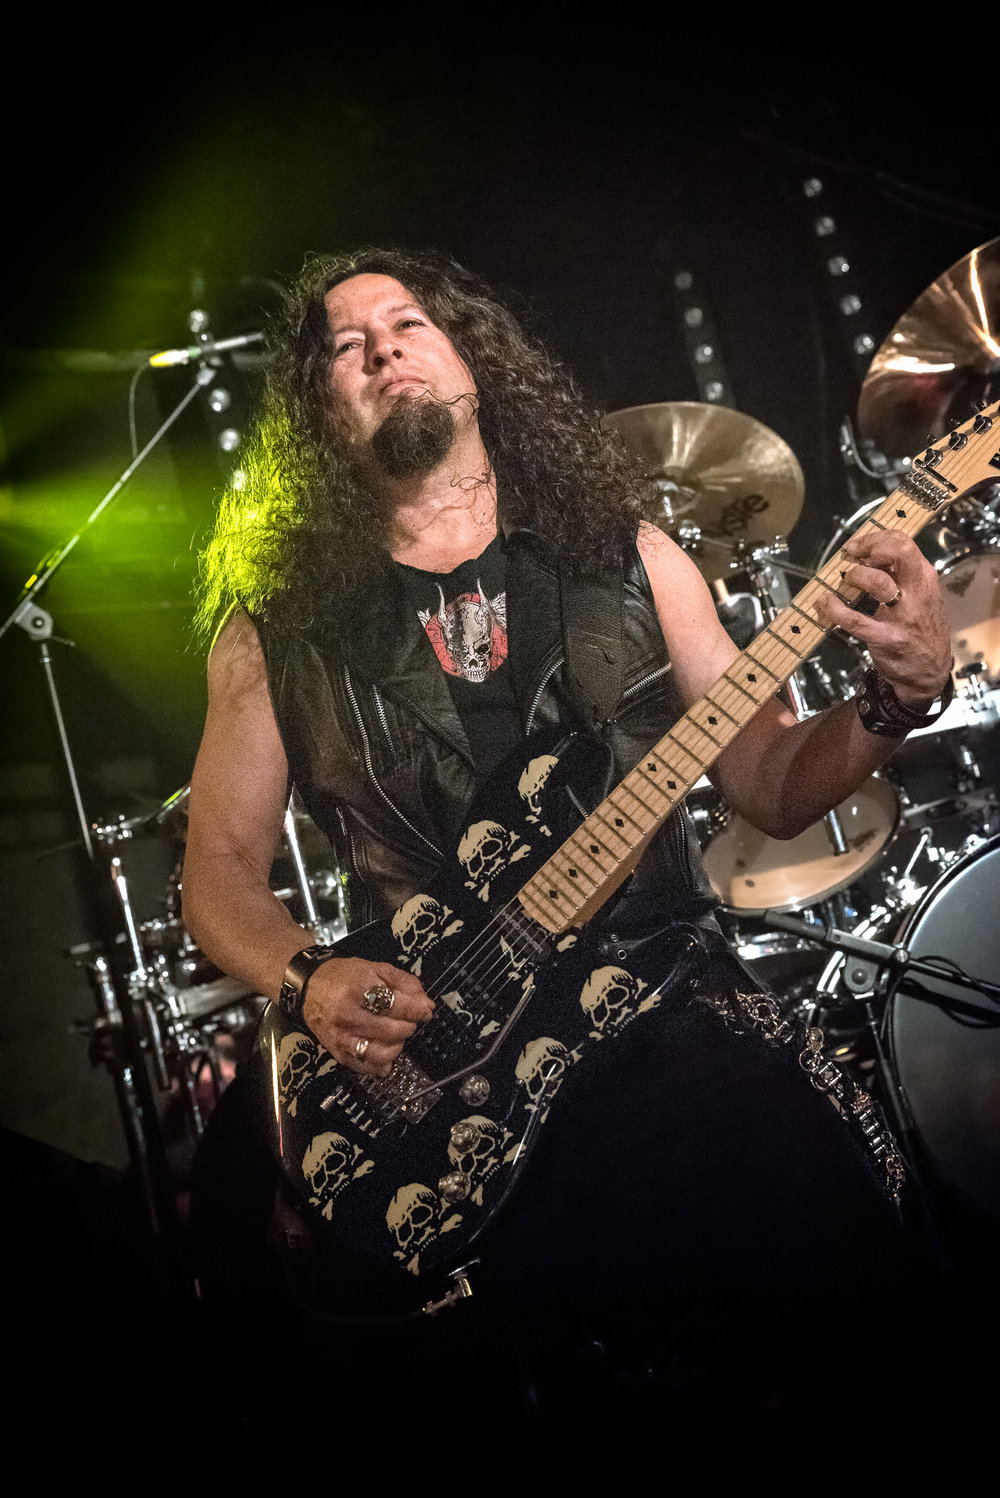 queensryche - melbourne - 2016 - paul tadday photography - 20.jpg